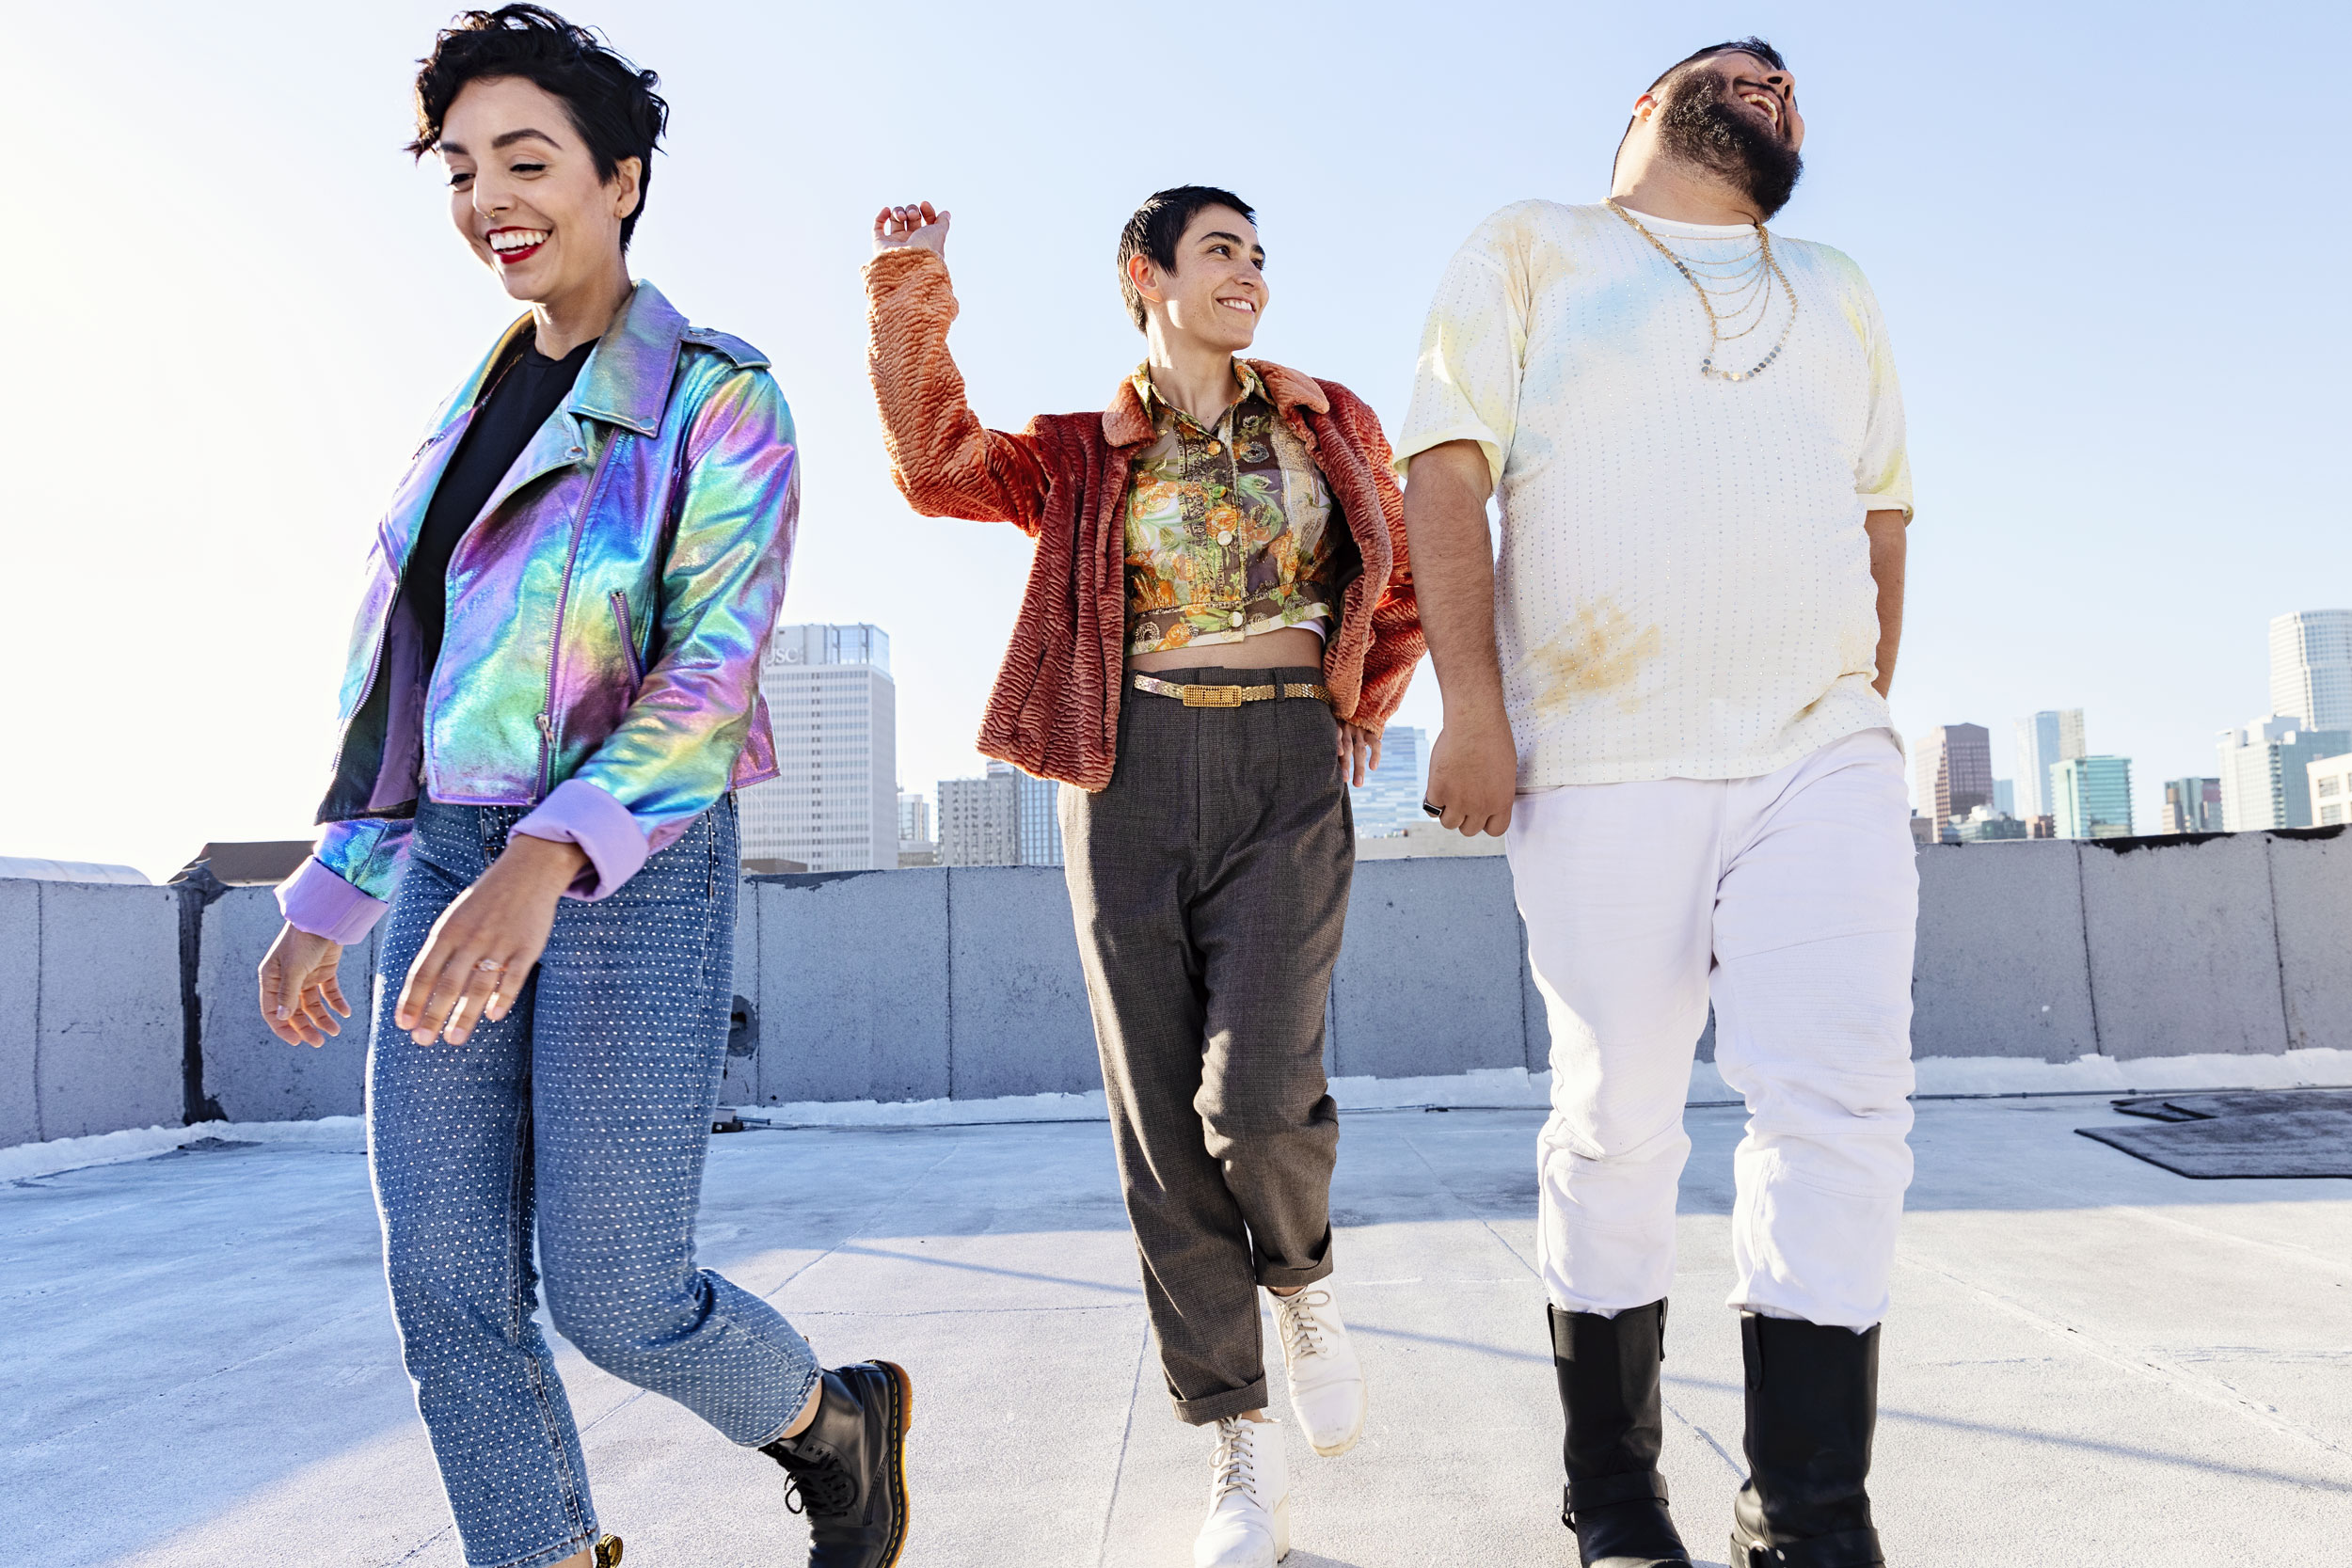 LGBTQ youth walking together laughing on a city roof